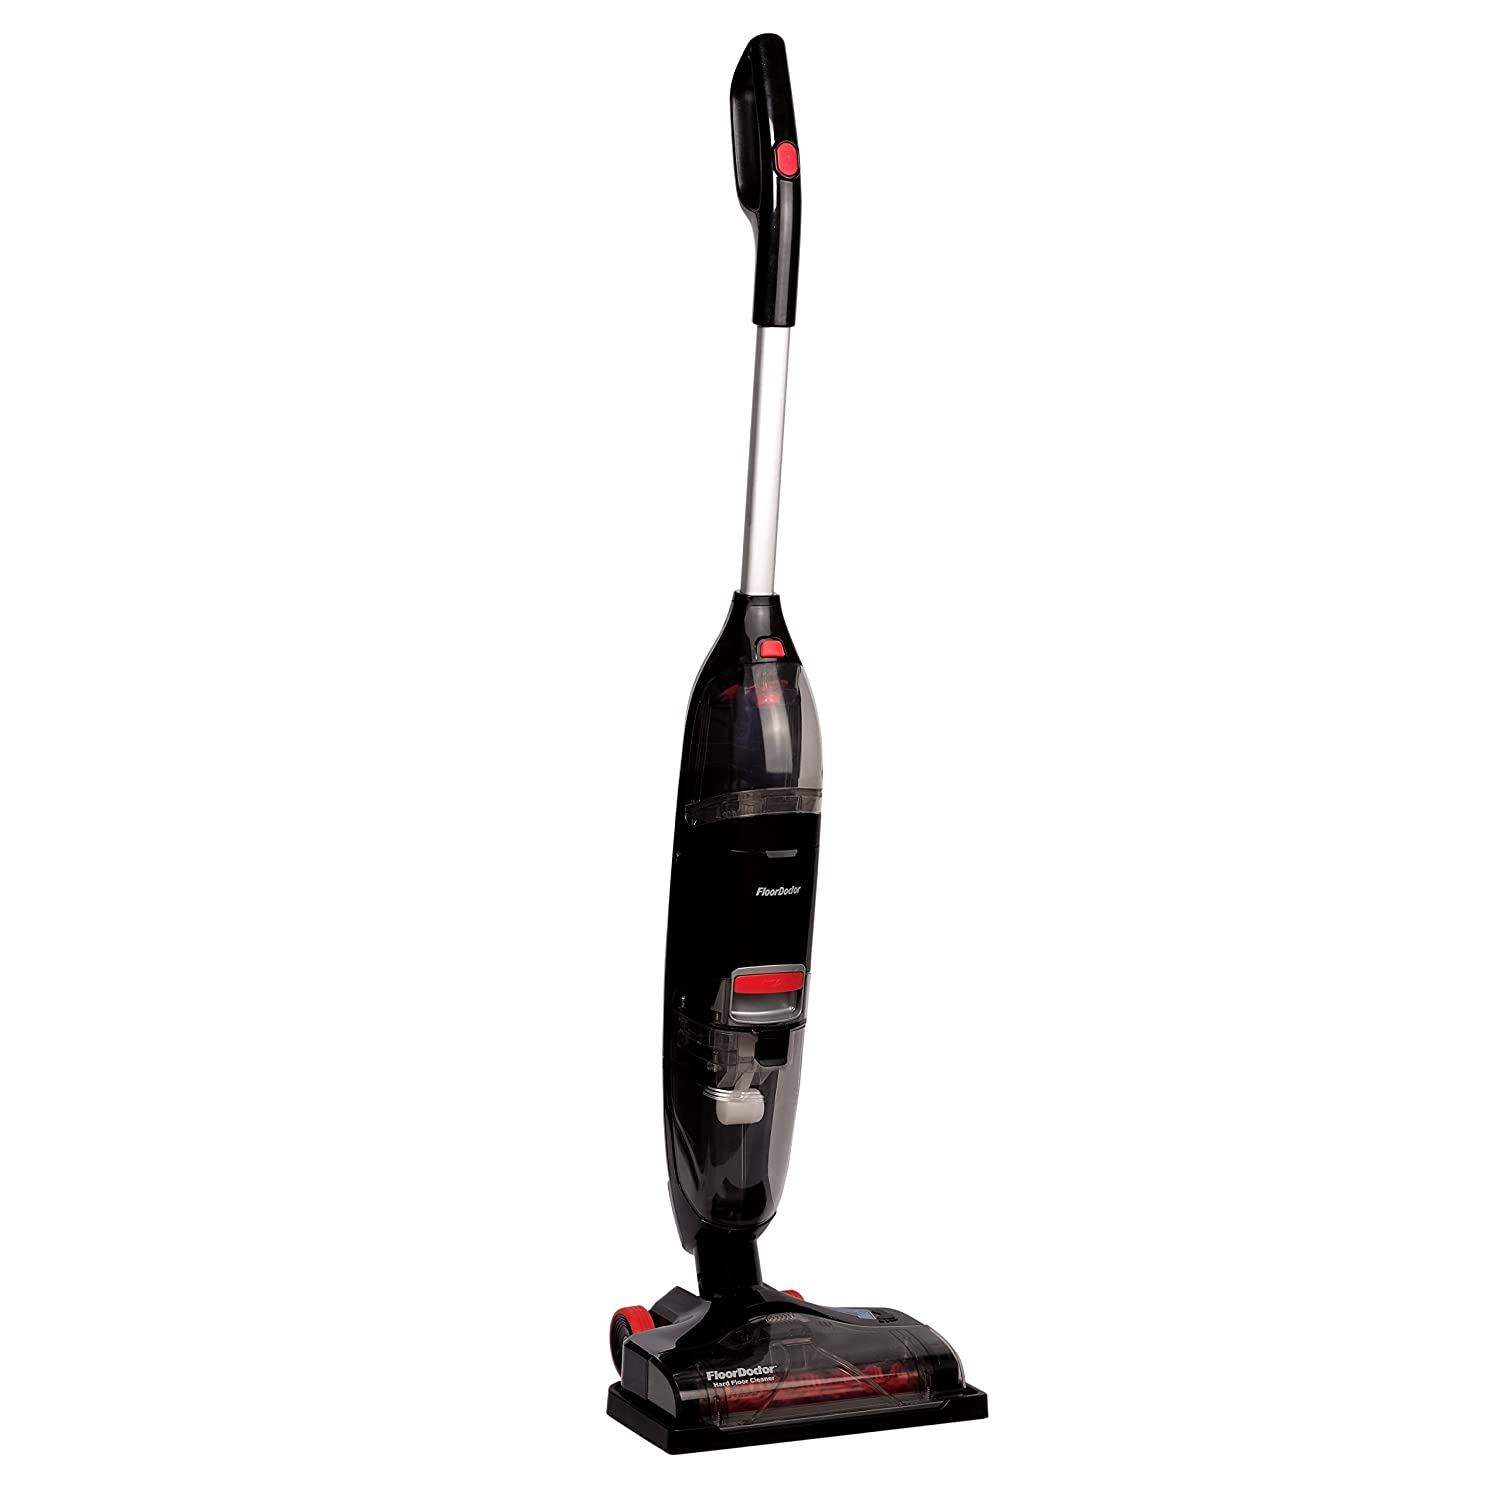 Floor Doctor Cordless Hard Floor Cleaner with Charging Dock, Cleans Spills and Stains and Polishes Hard Floor Surfaces 933304